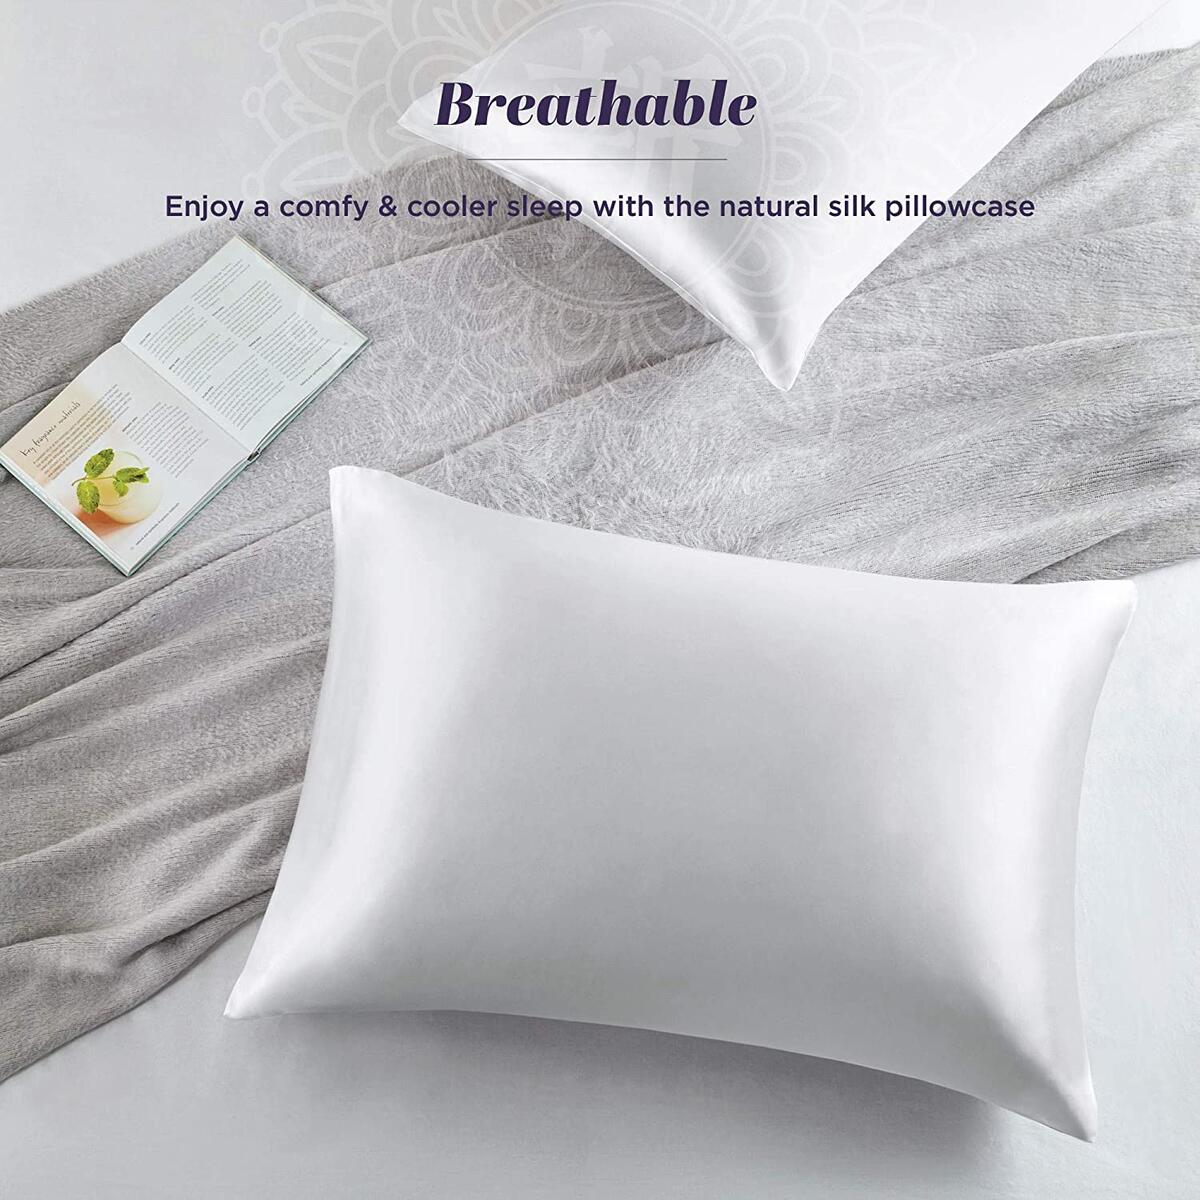 100% Pure Mulberry Silk Pillowcase for Hair and Skin | Premium 25mm Silk Pillowcase, Hypoallergenic Antibacterial with Hidden Zipper -1 Pack (Queen 20x30 Natural White)